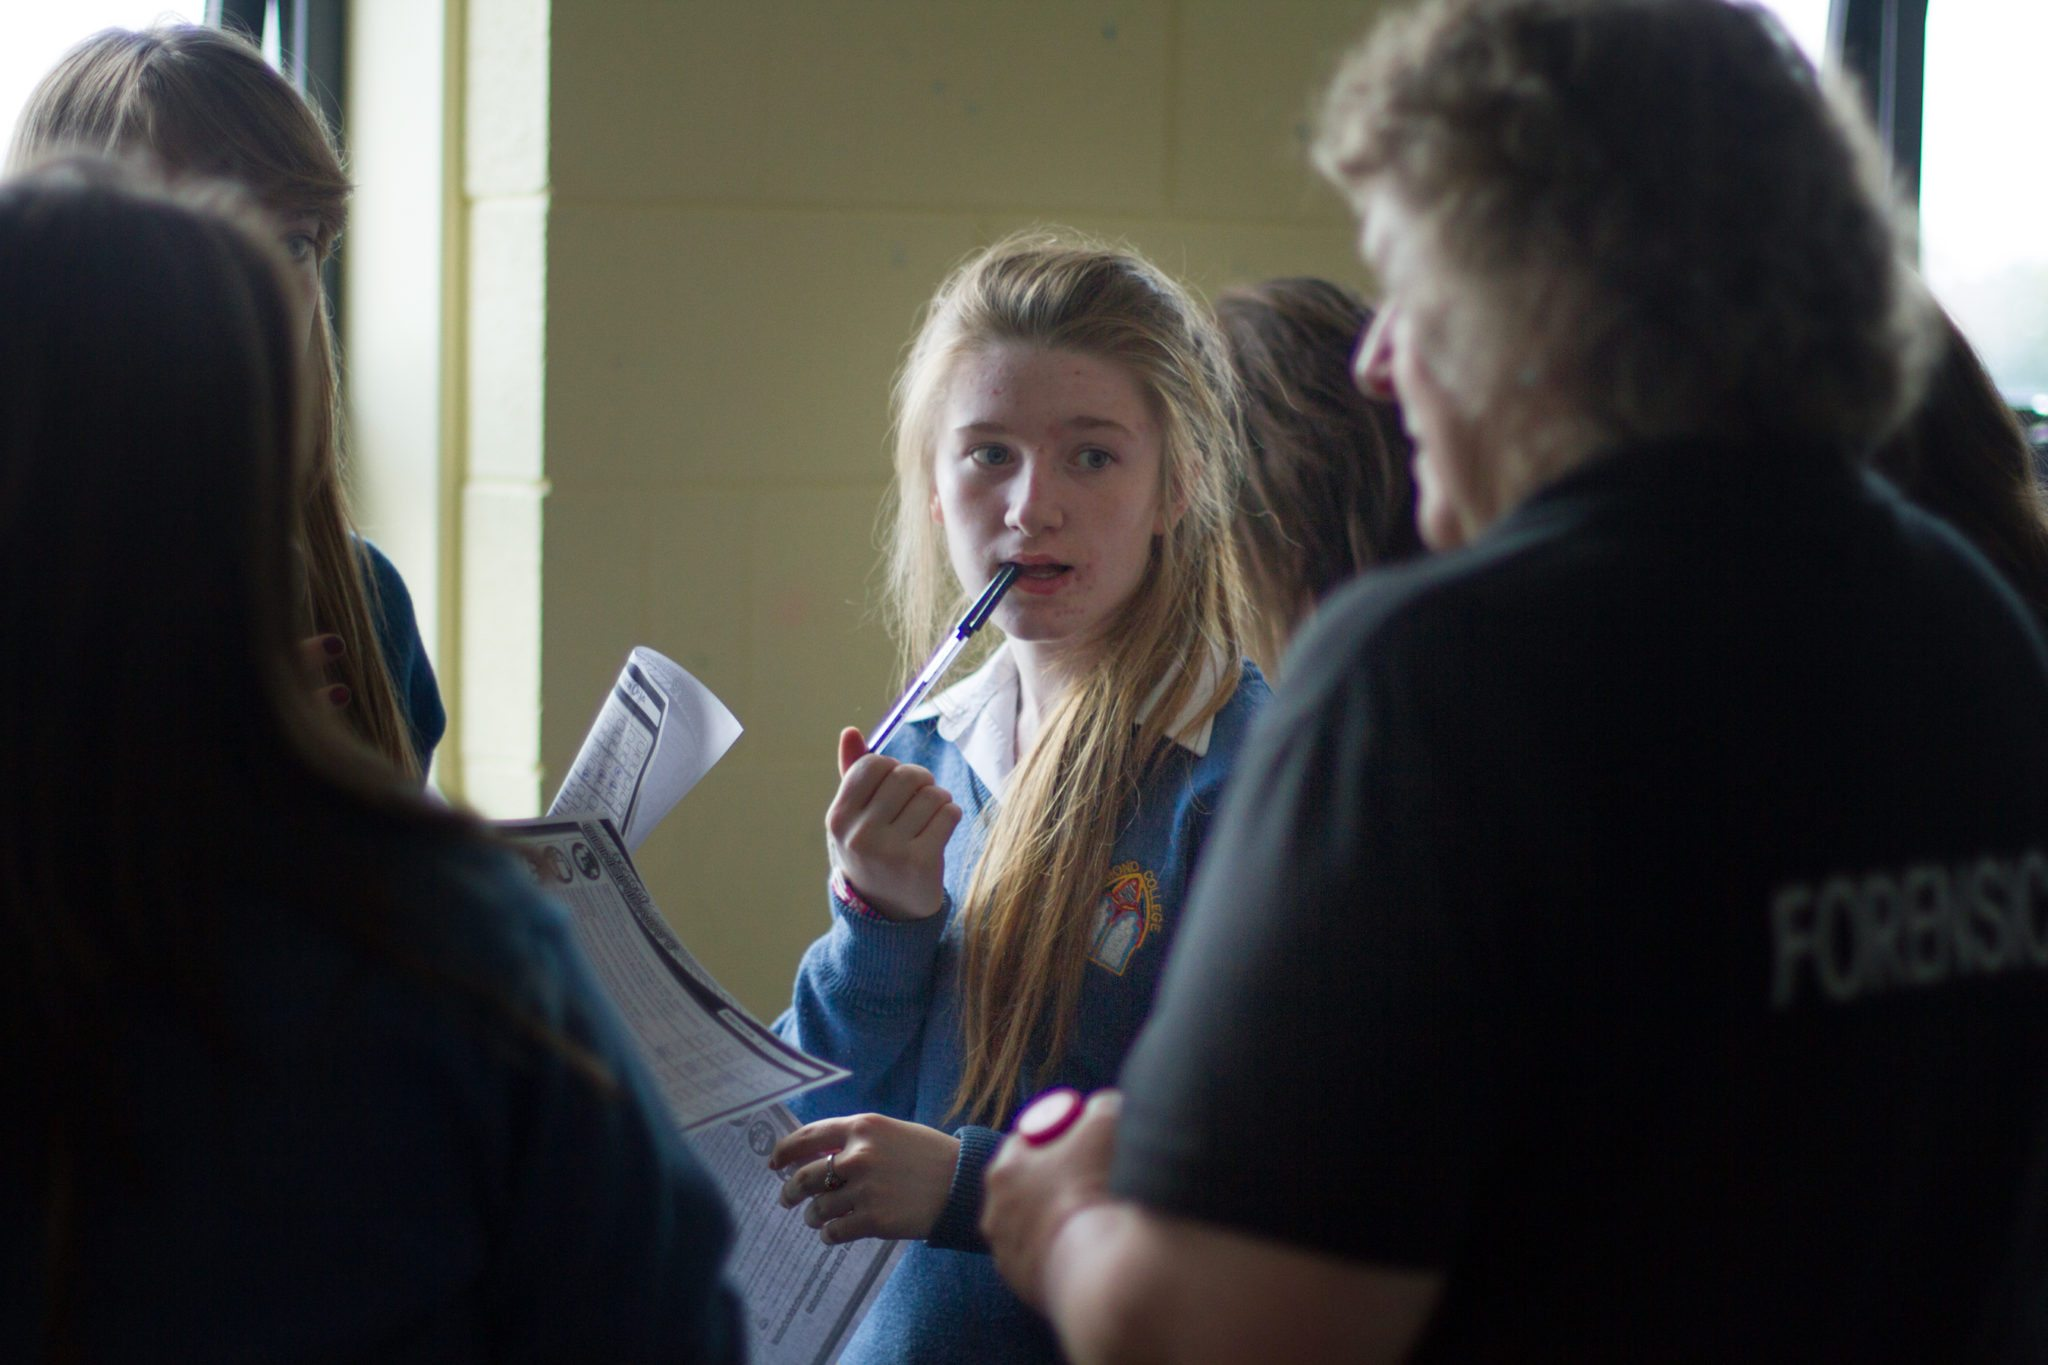 Desmond College Students learning about Forensics at the Desmond College Forensic Science Day Oct 2014